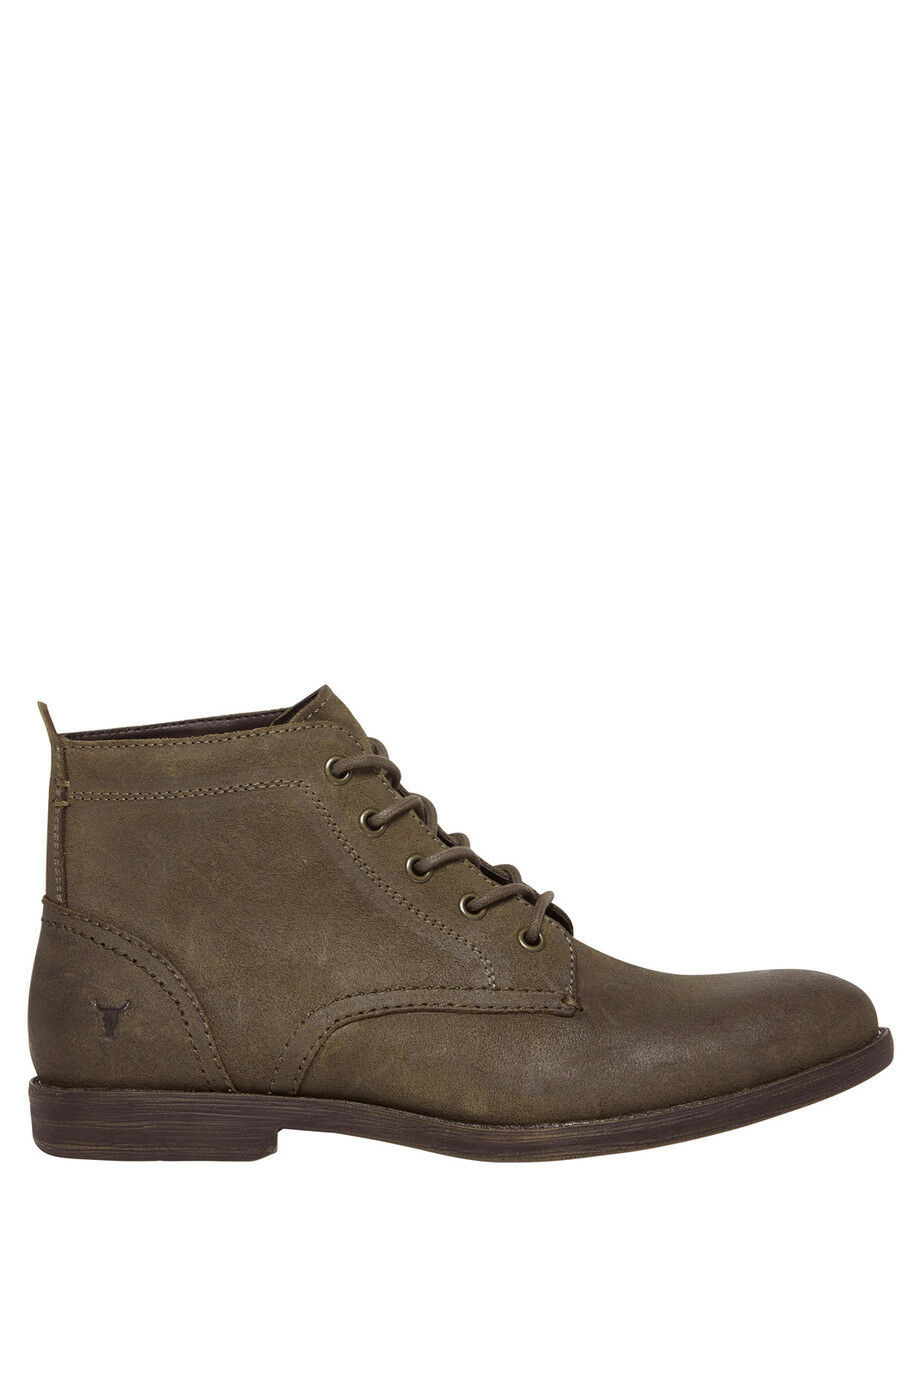 NEW Windsor Smith Keaton 5 Hole Boot Taupe